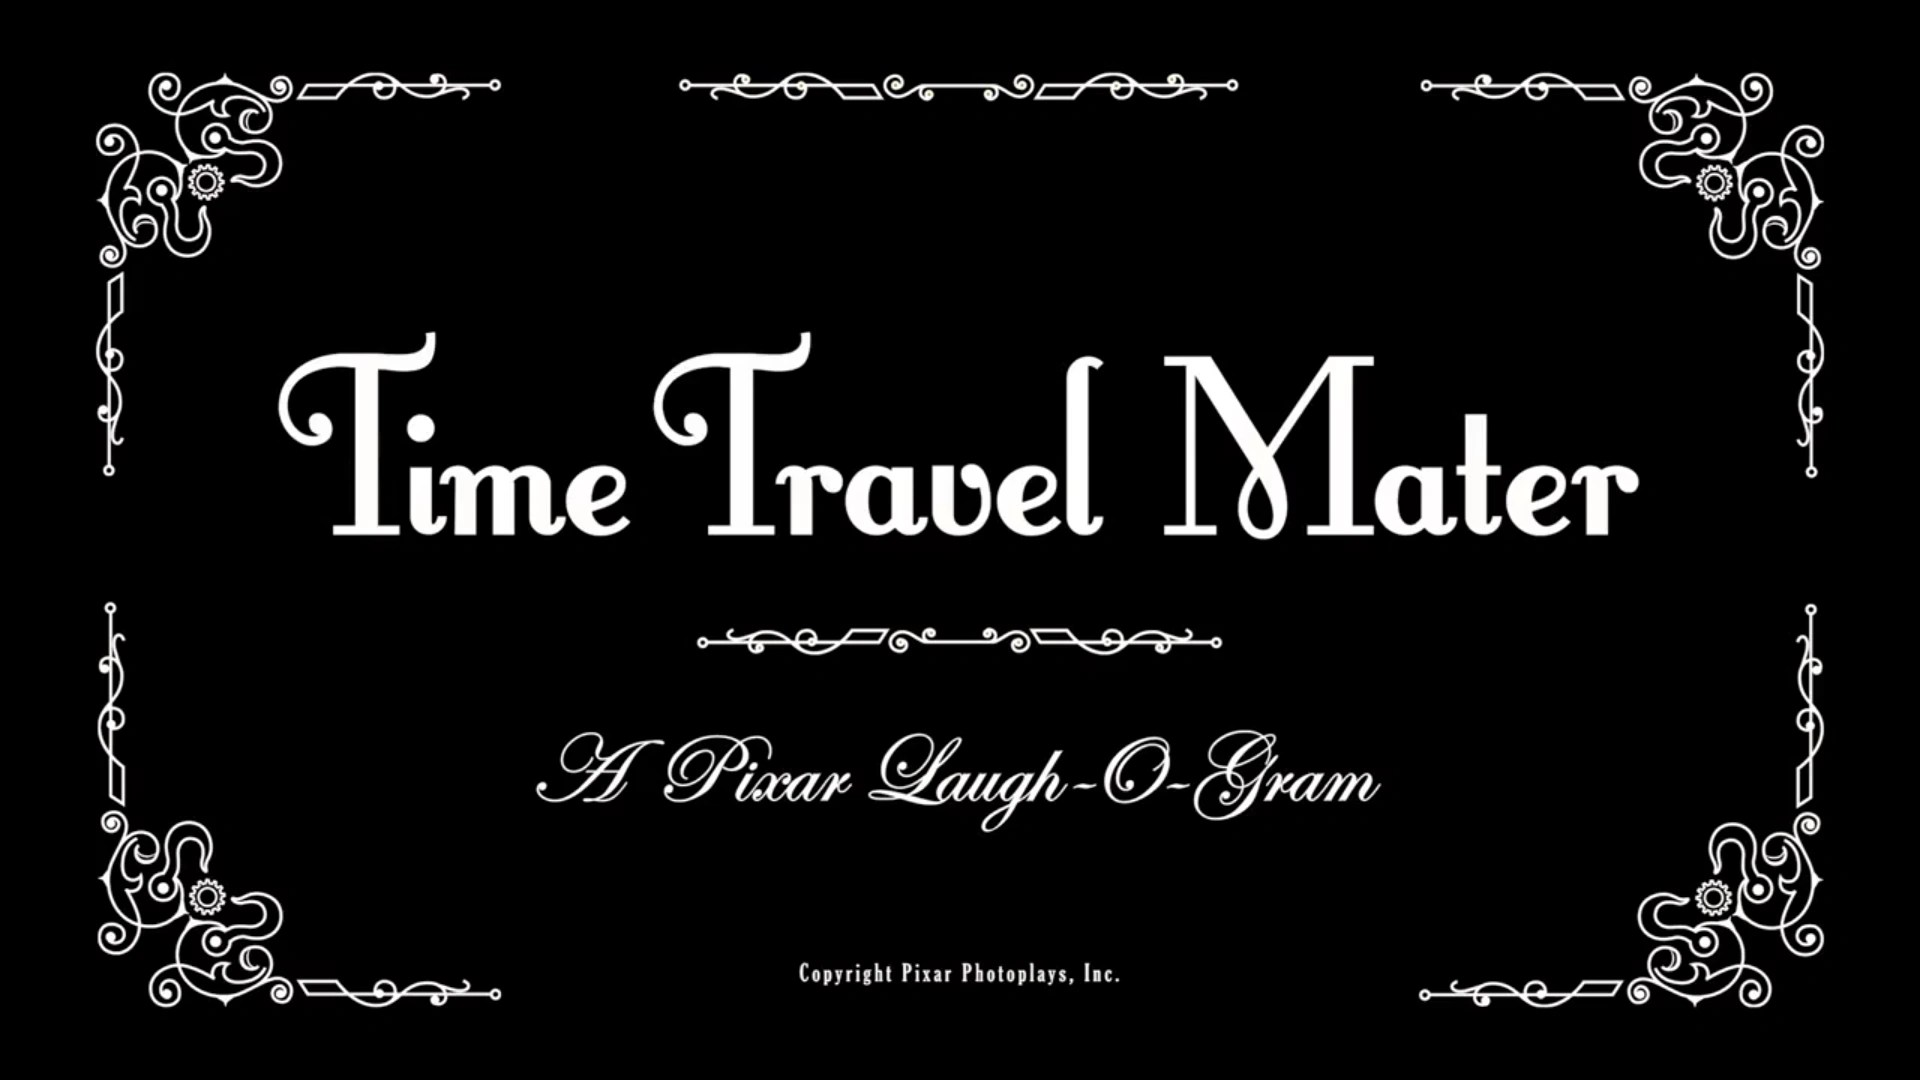 Pixar Cars Wallpaper Border Time Travel Mater World Of Cars Wiki Fandom Powered By